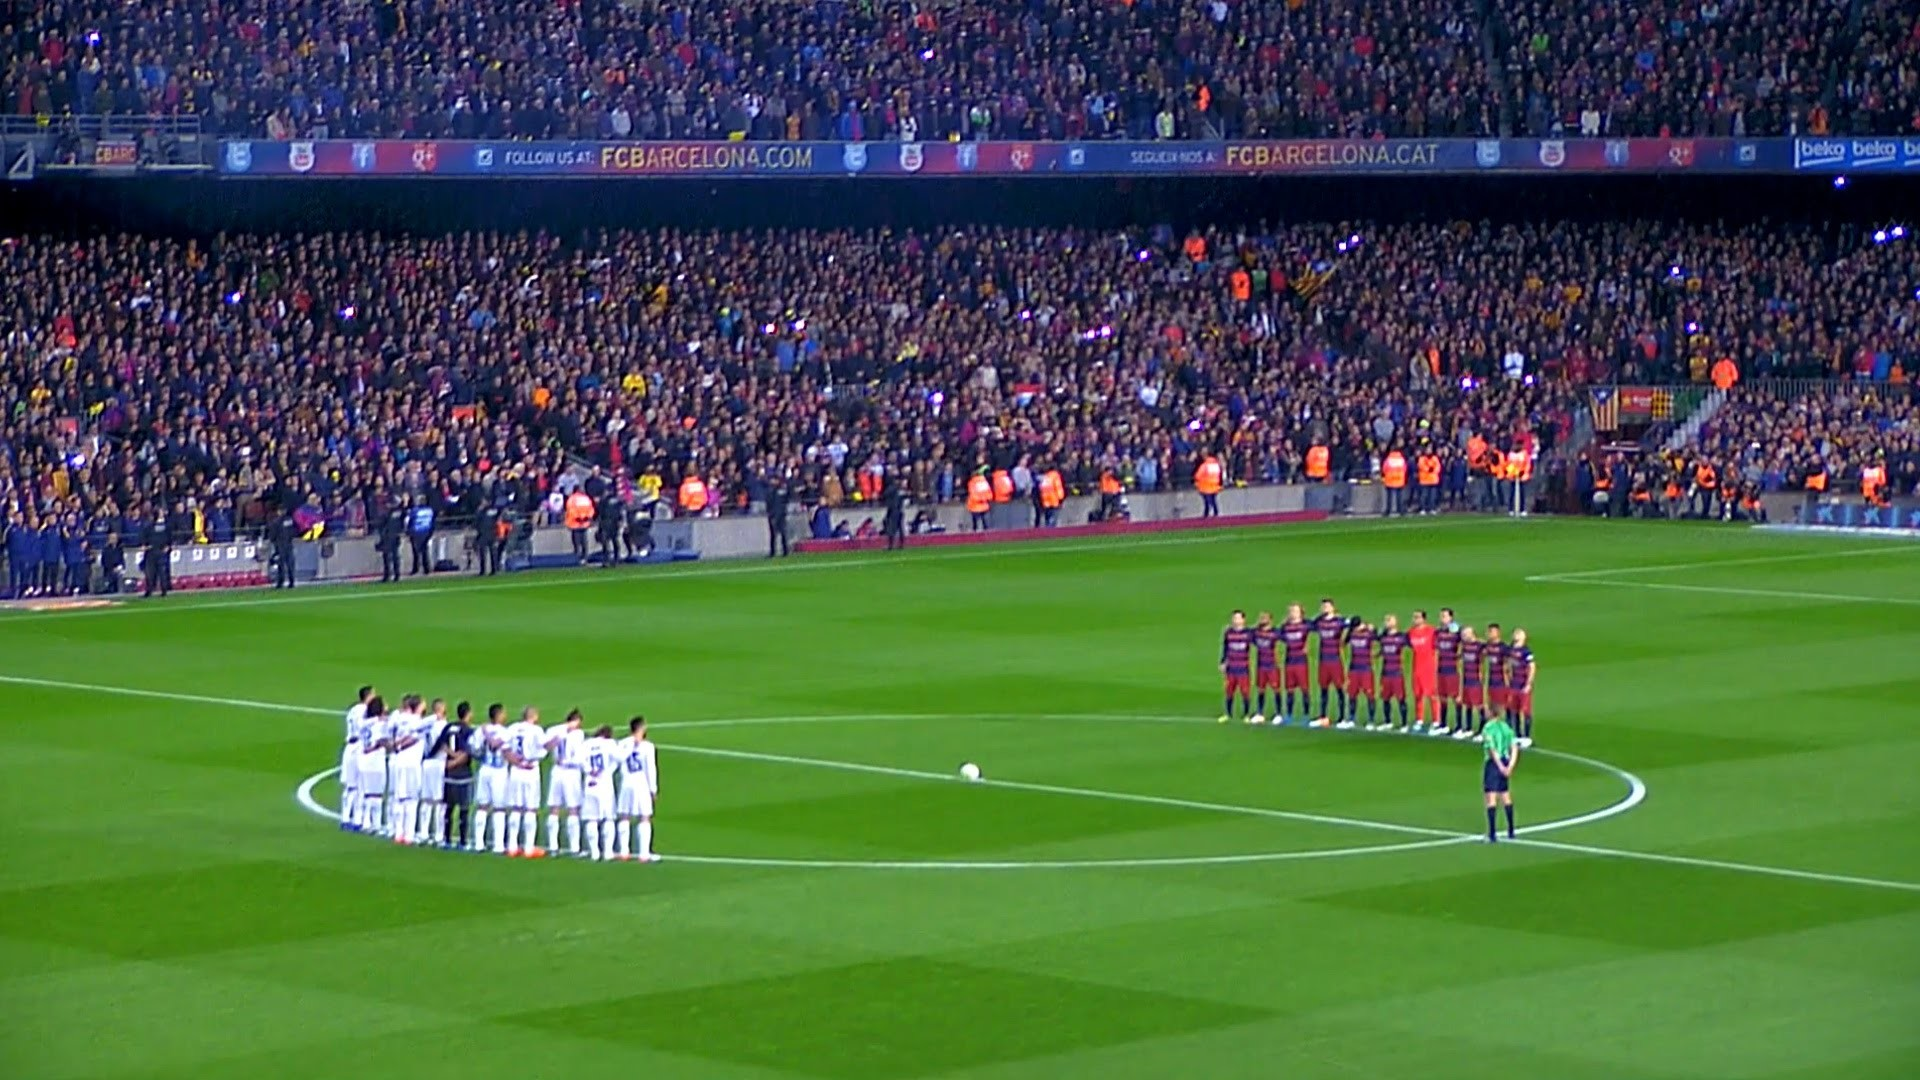 Res: 1920x1080, Download V.14 - Imagens Do Real Madrid, Wallpapers and Pictures for PC &  Mac, Tablet, Laptop, ...